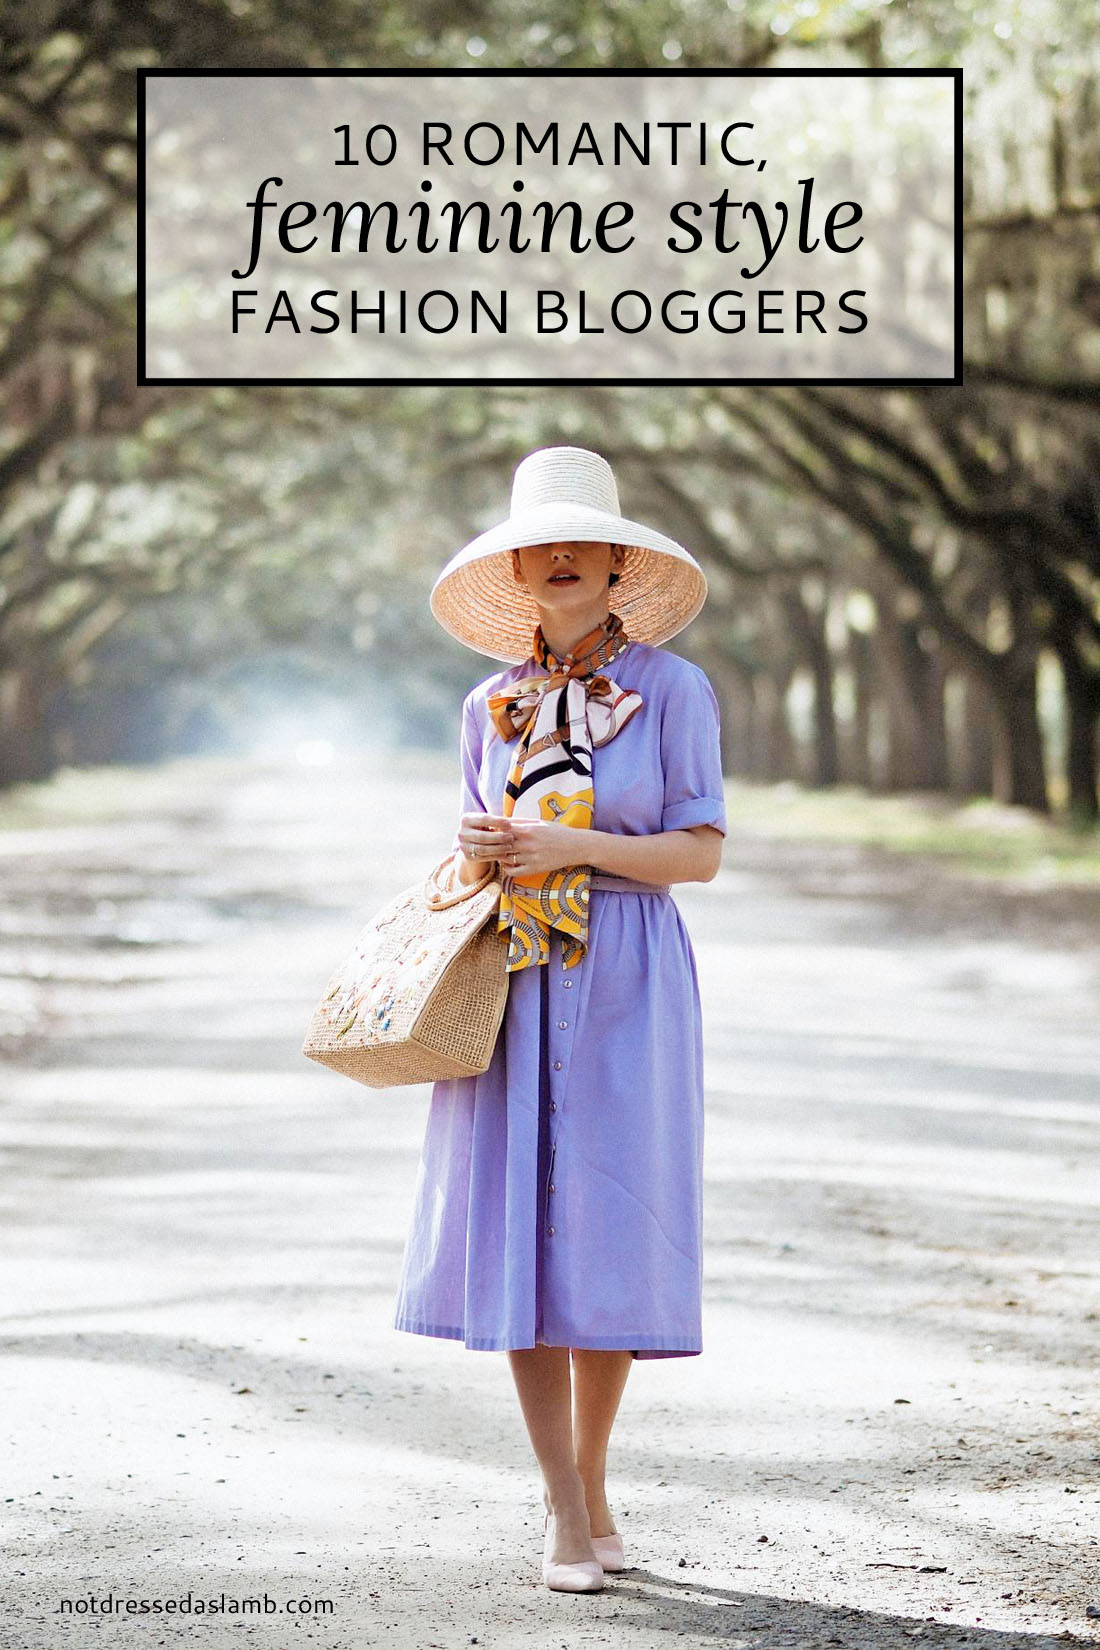 10 Romantic, Feminine Style Fashion Bloggers | Not Dressed As Lamb